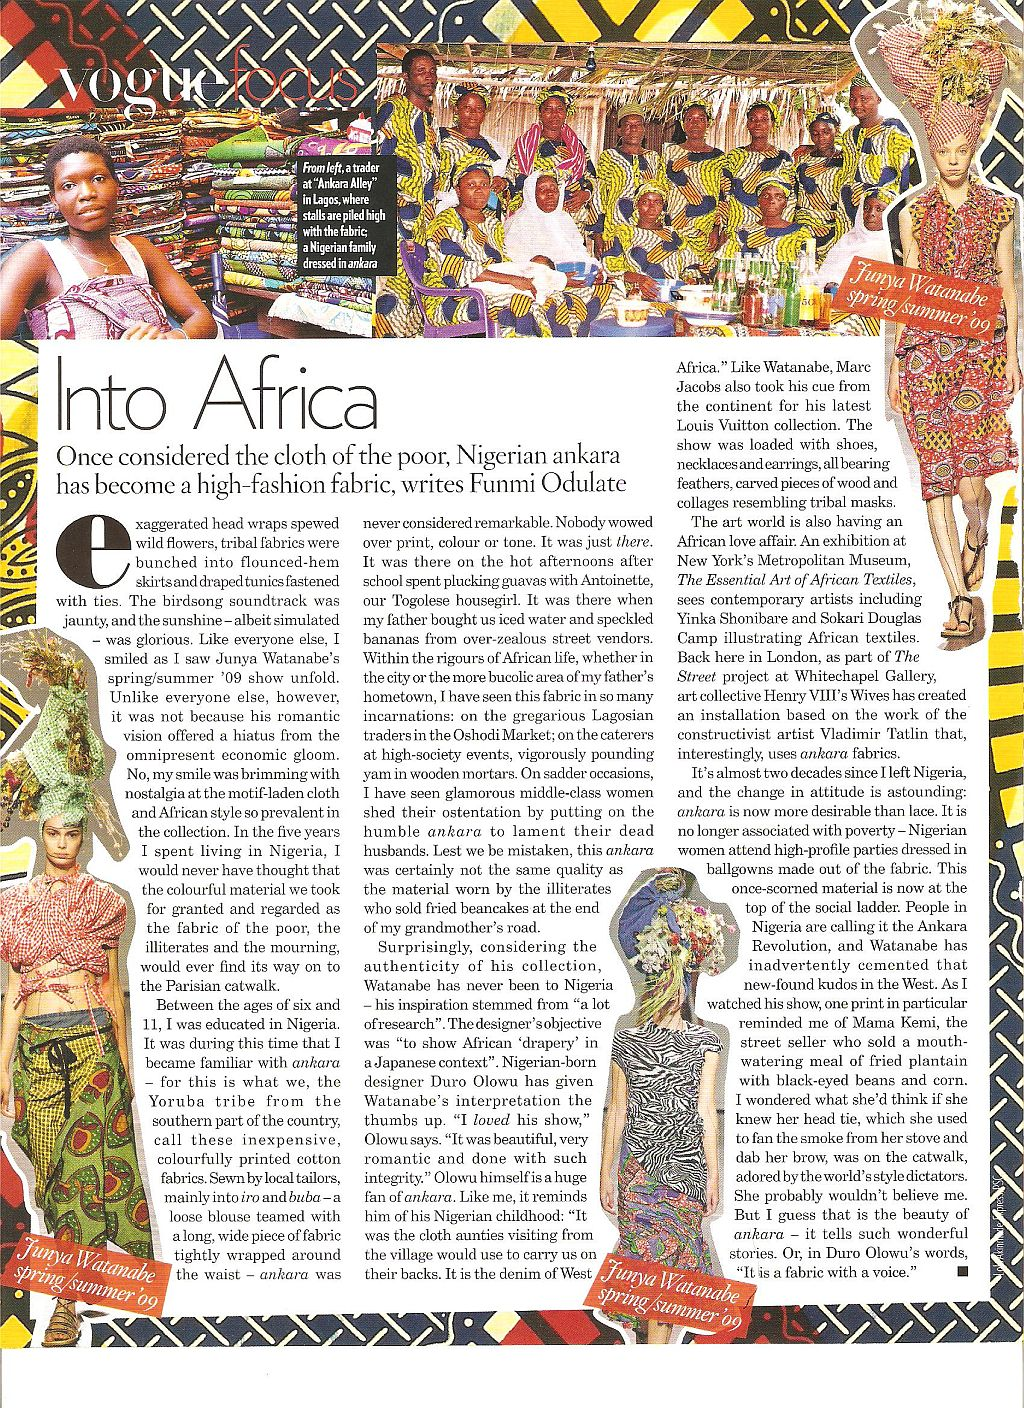 bella-naija-ankara-in-vogue-february-2009